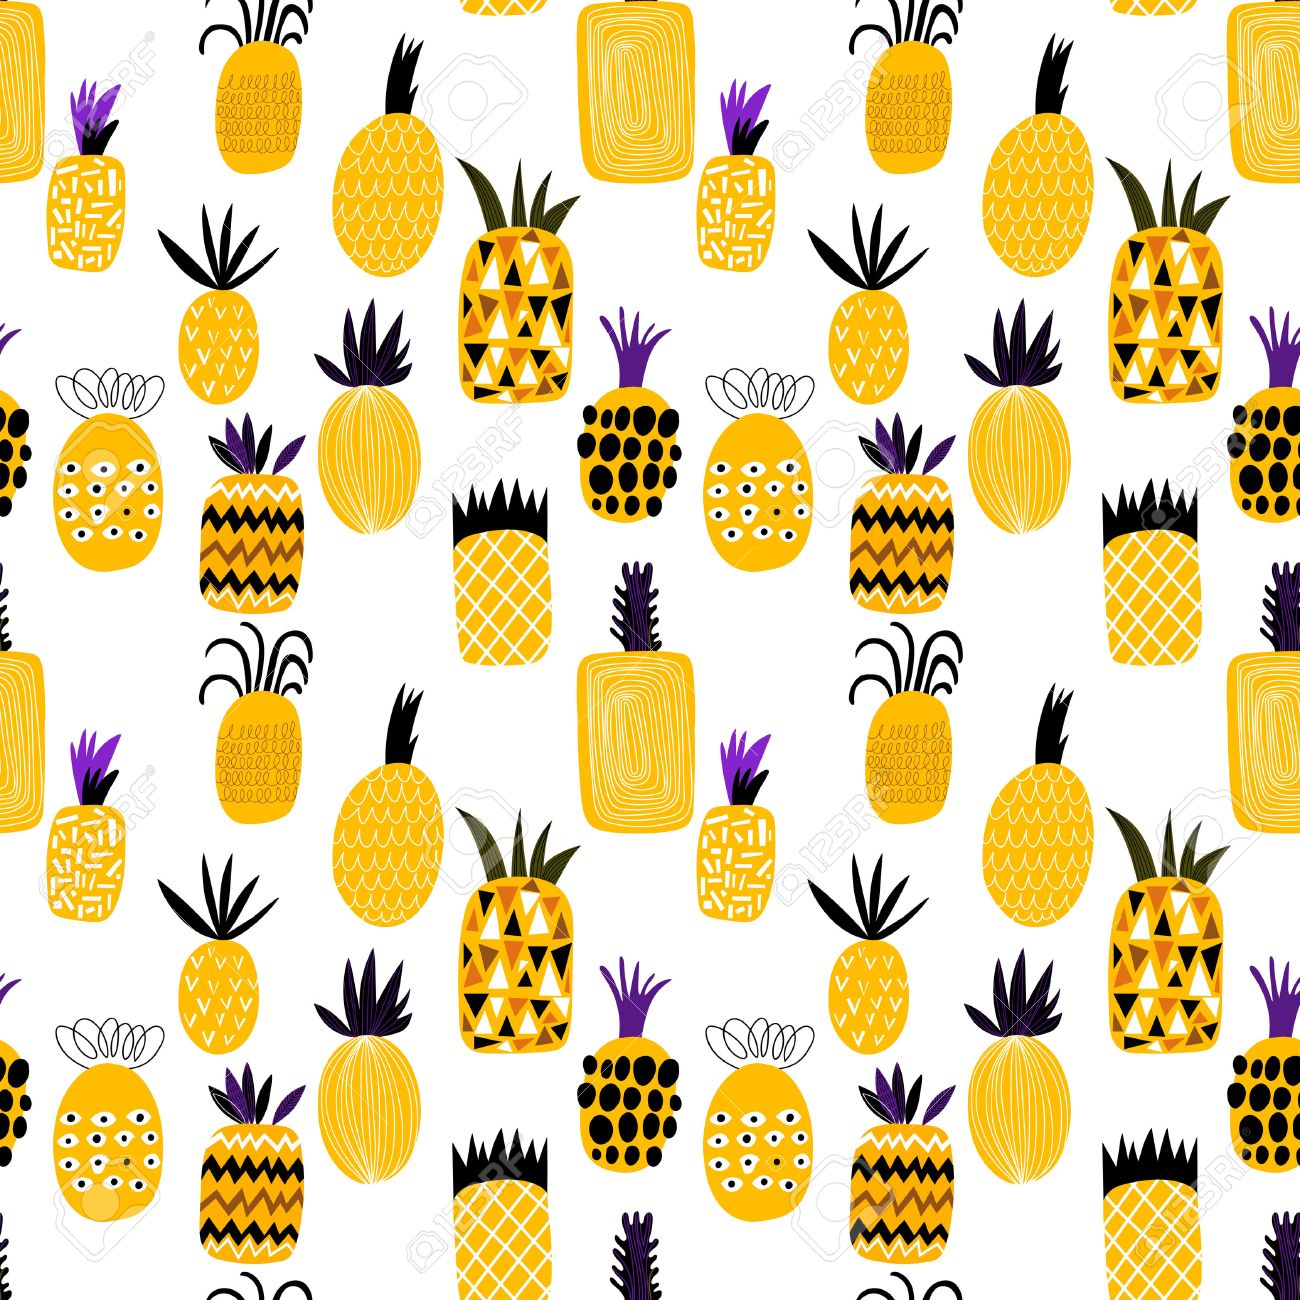 Summer pineapple fruit illustration background pattern. Seamless pattern can be used for wallpapers, pattern fills, web page backgrounds, surface textures - 54919020